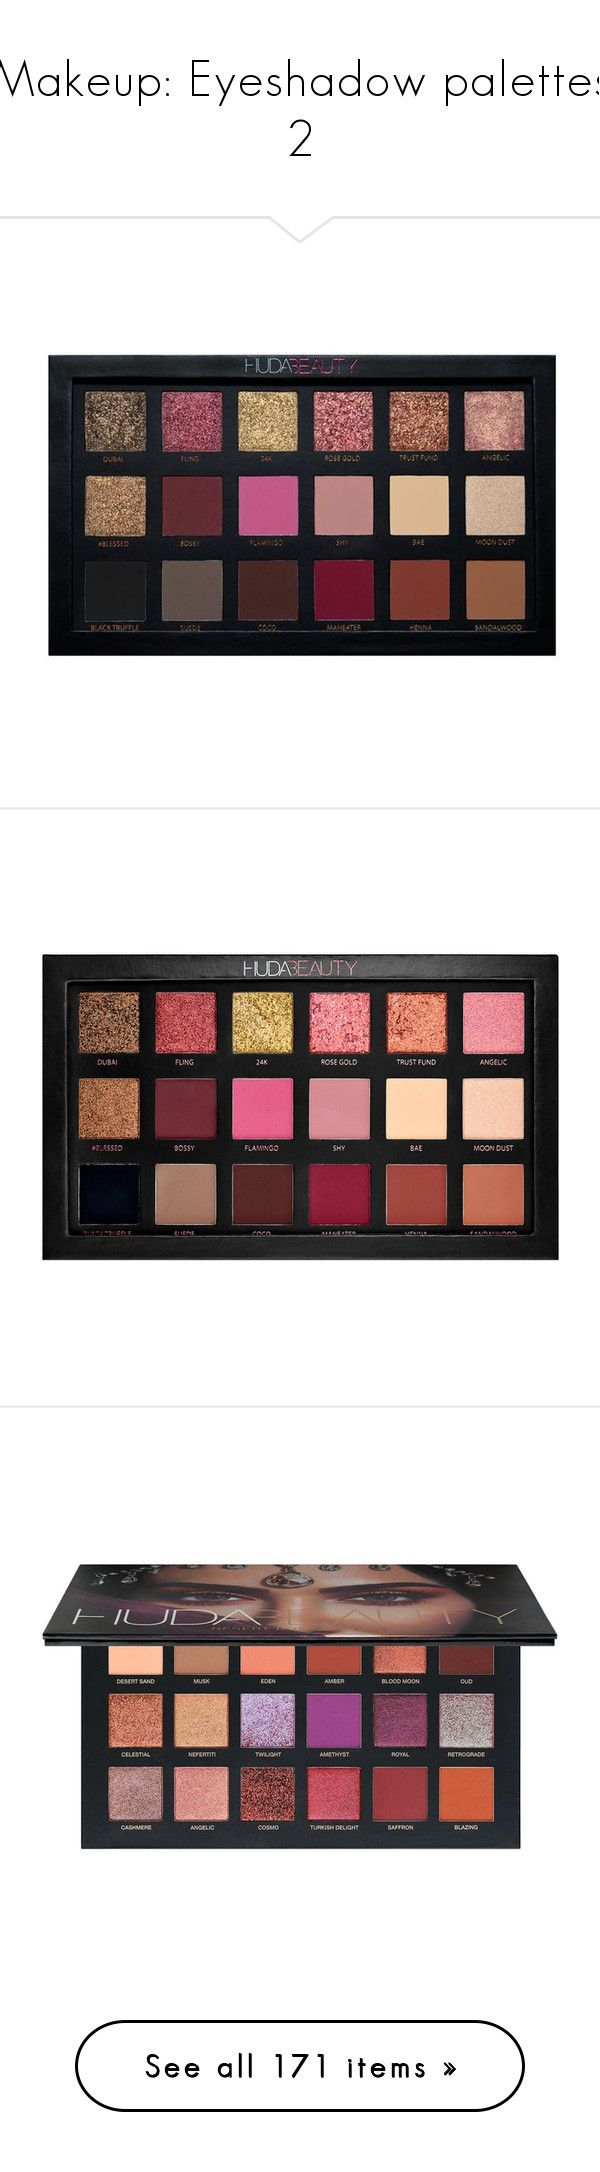 """""""Makeup: Eyeshadow palettes 2"""" by katiasitems on Polyvore featuring beauty products, makeup, eye makeup, eyeshadow, huda beauty eyeshadow, palette eyeshadow, beauty, fillers, eyes and filler"""